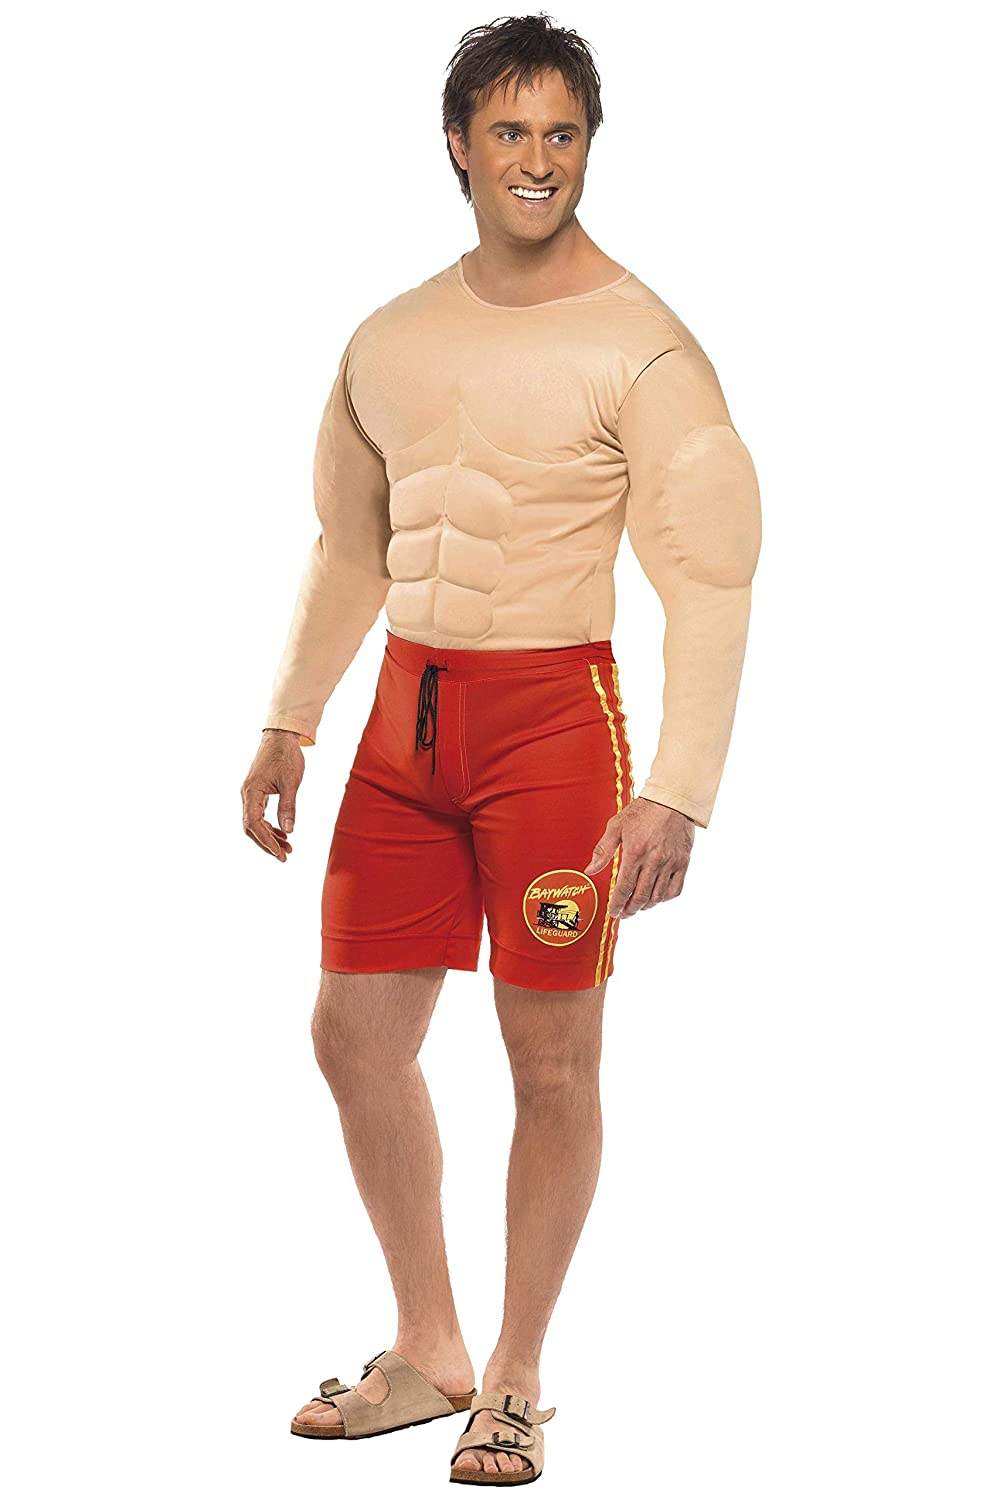 7cc70a4d81a Smiffys Officially Licensed Baywatch Lifeguard Costume  Smiffys   Amazon.co.uk  Toys   Games